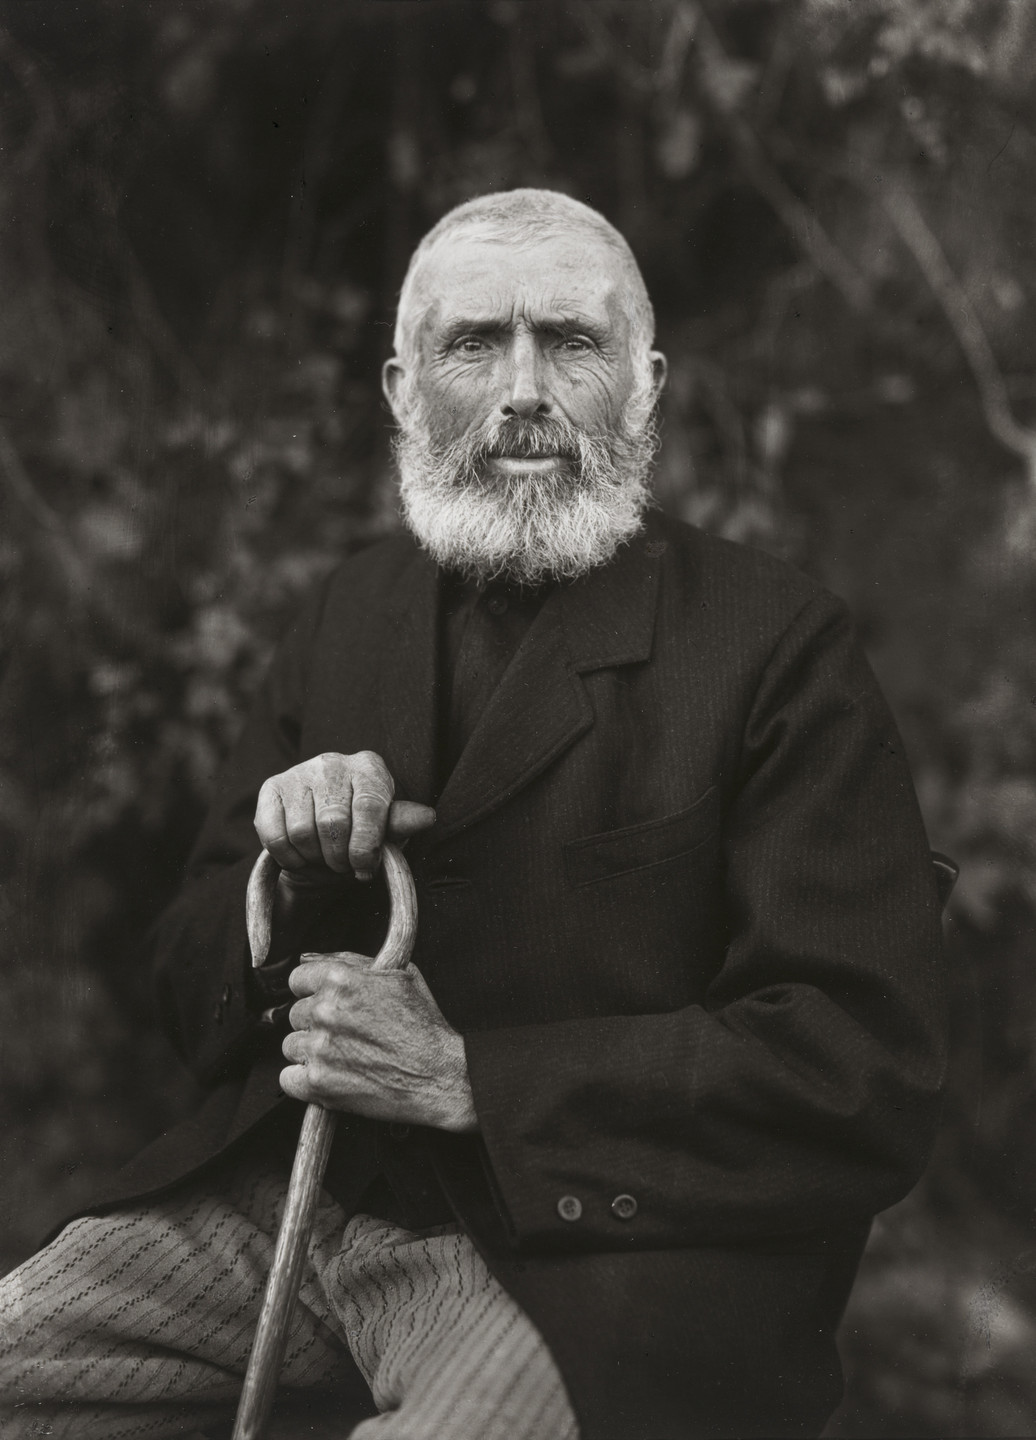 August Sander. The Man of the Soil. 1910